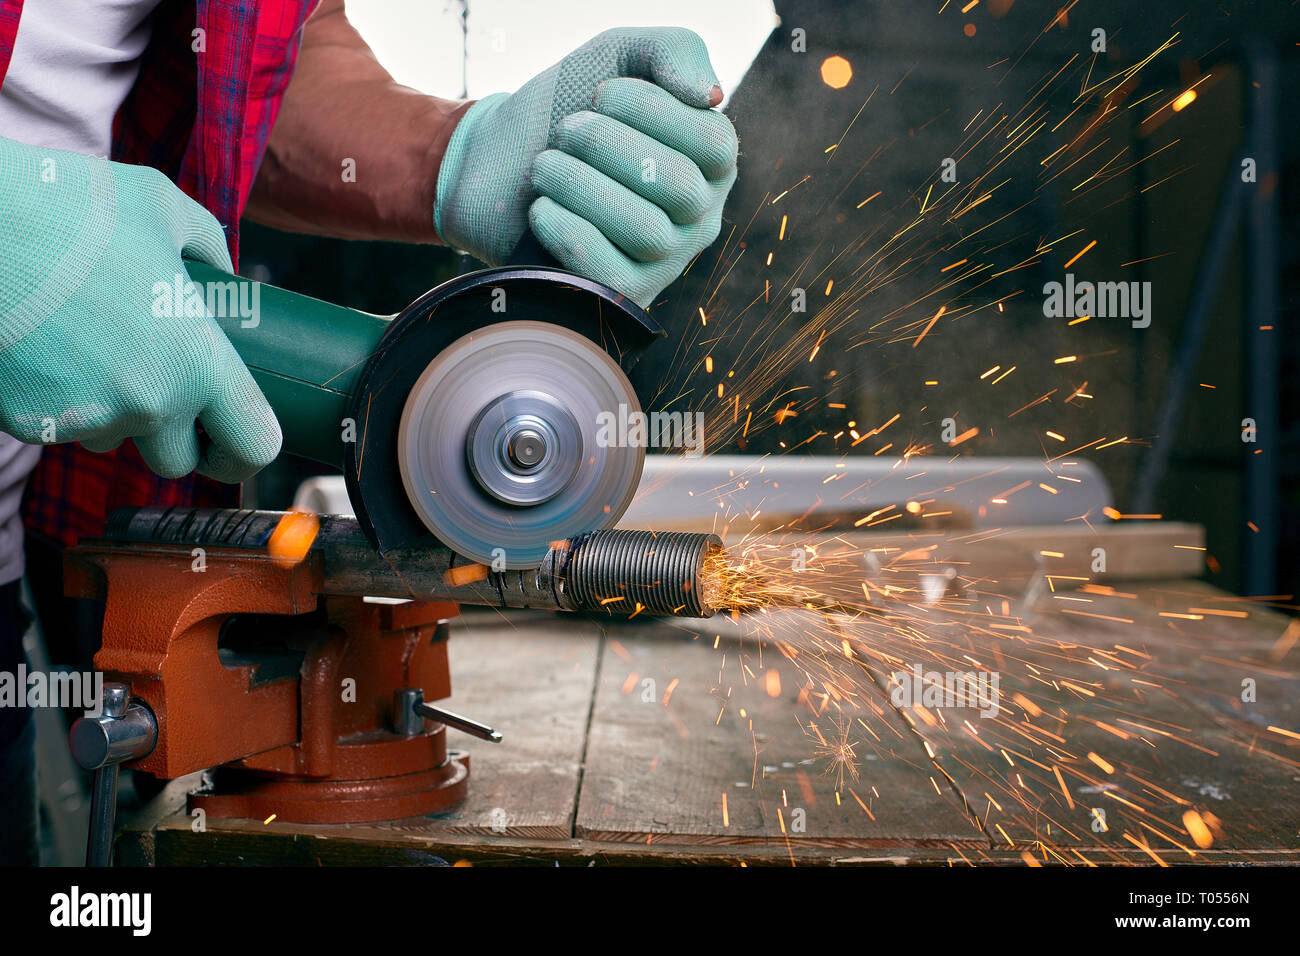 Gloved hands hold an angle grinder and cut the pipe, many sparks fly to the sides - Stock Image